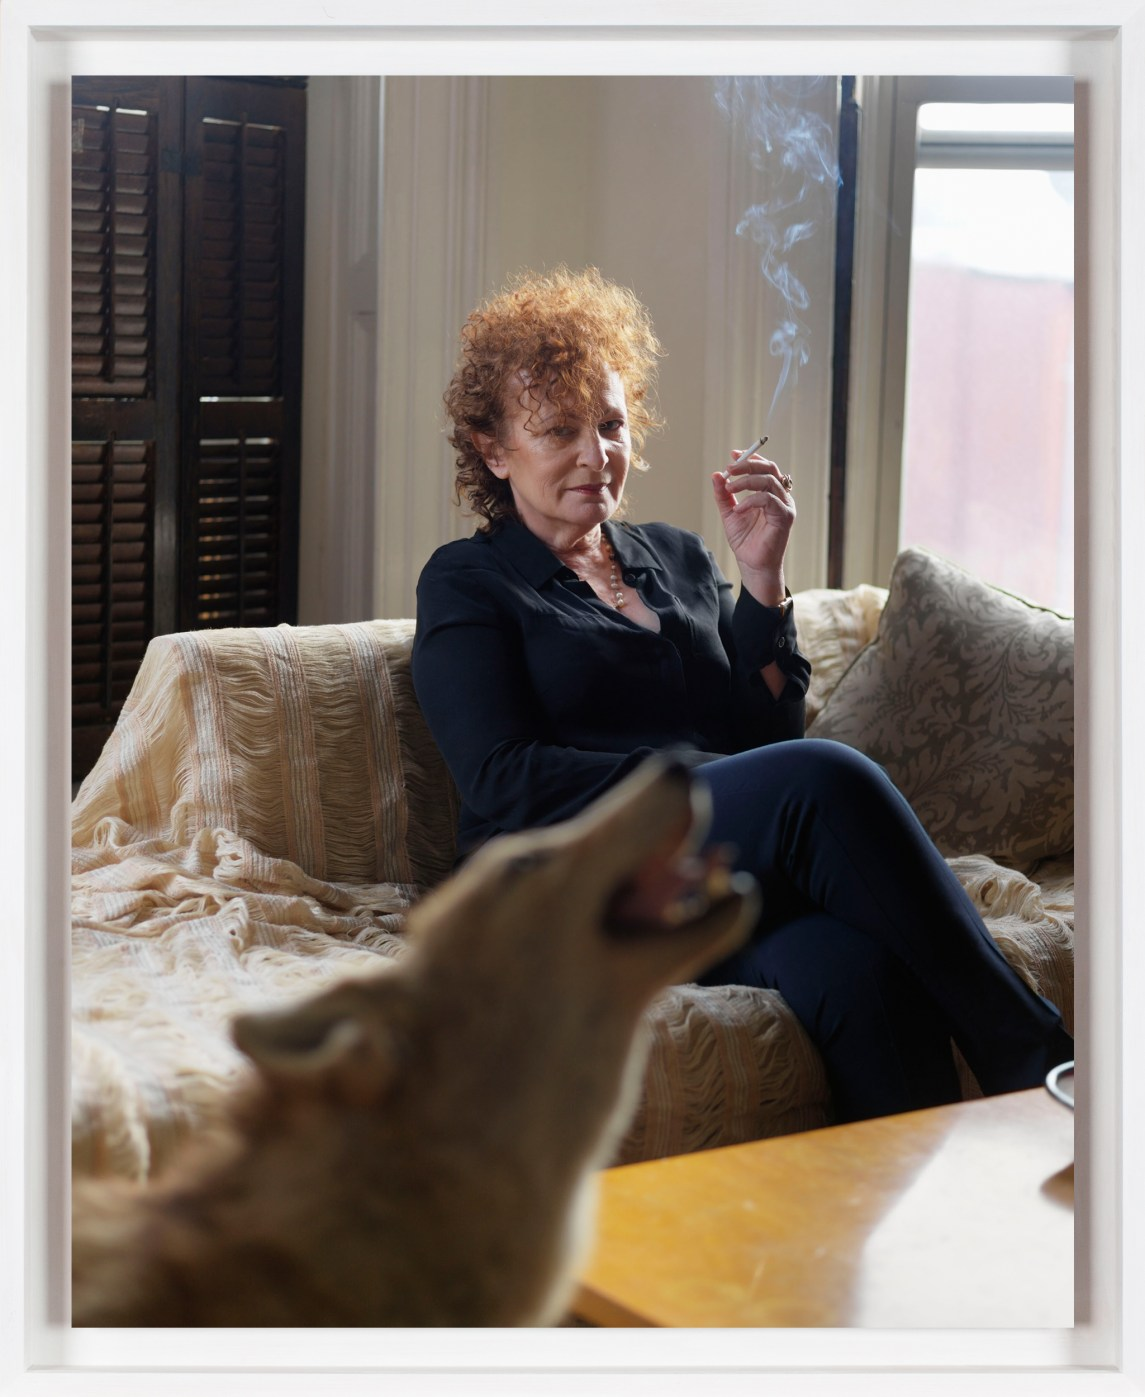 A color photograph of the artist Nan Goldin in her home. She is sitting on a chaise smoking a cigarette, and a barking dog is in the foreground.